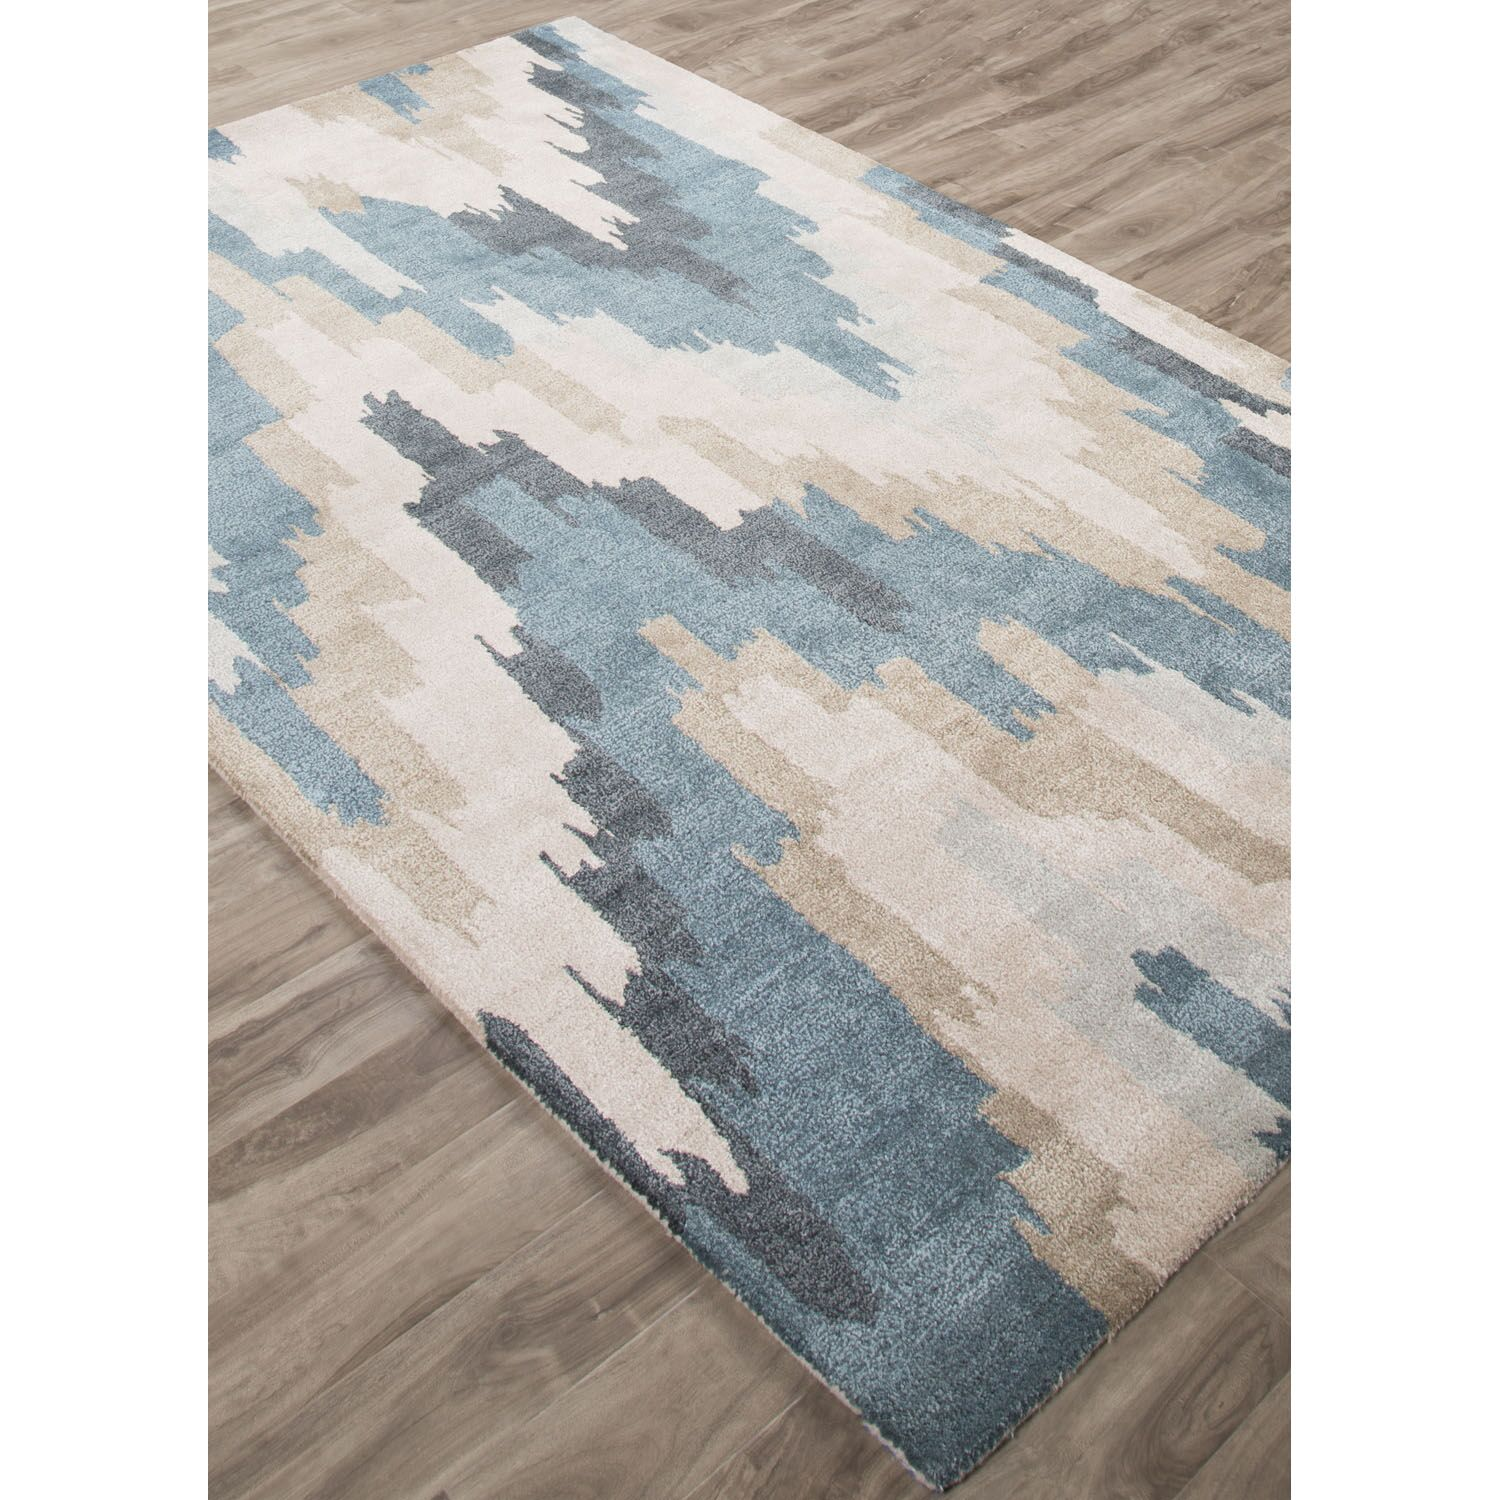 Valtierra Hand-Tufted Blue Area Rug Rug Size: Rectangle 5' x 8'